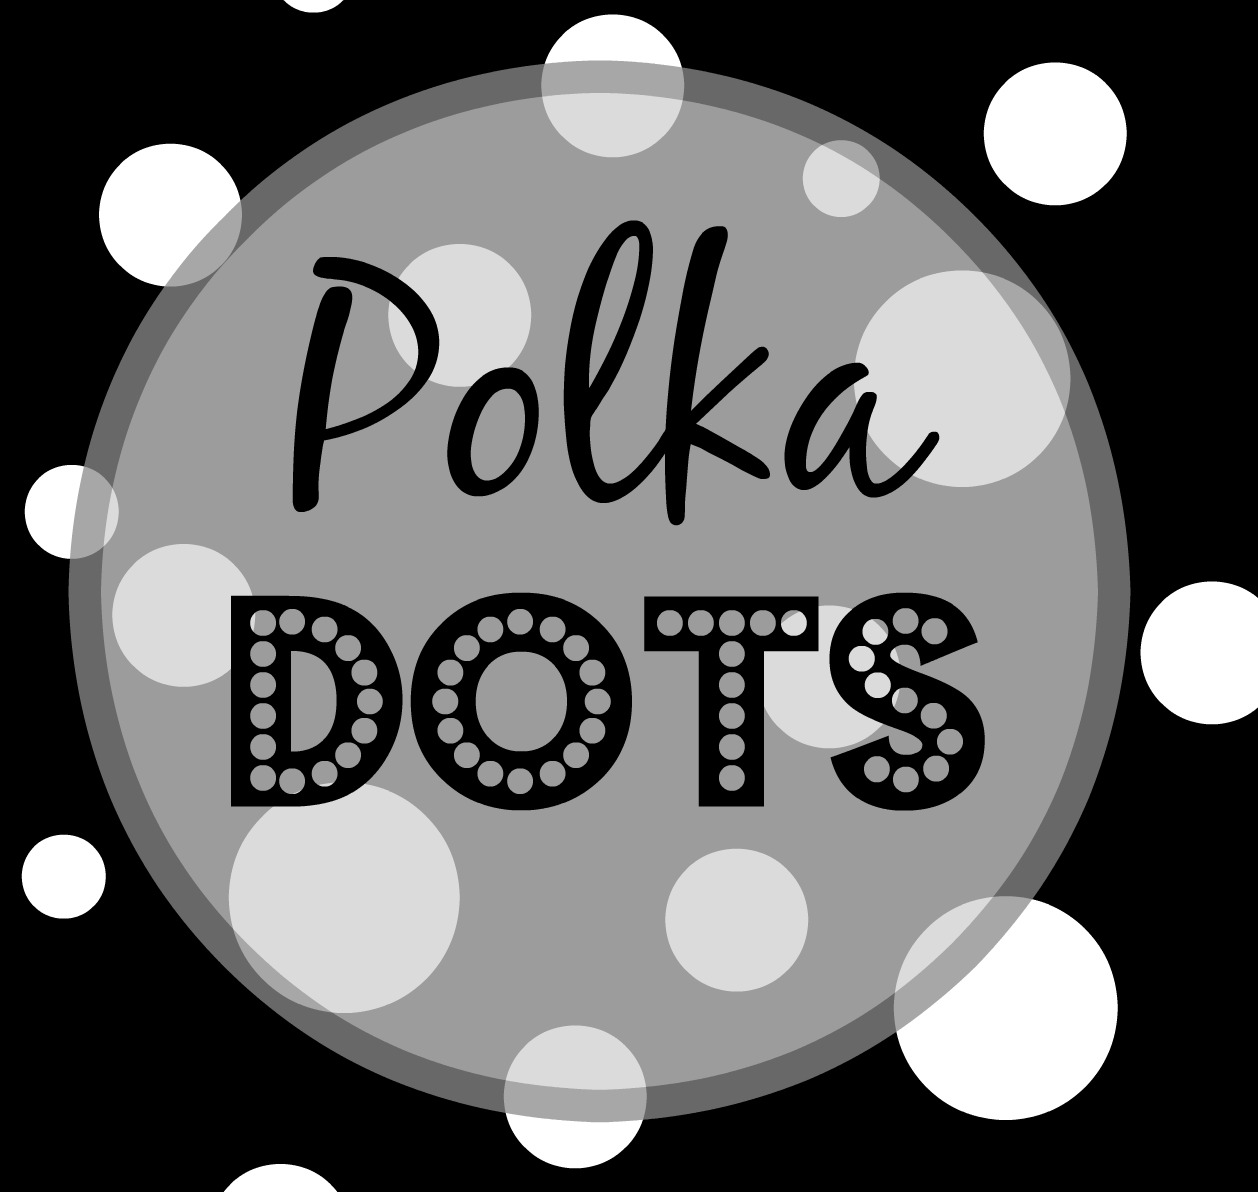 Polka dot pattern play the queen in between a great polka dot pattern can be so much fun tell me though am i the only one who knows how to spell polka but actually still pronounces it po ka altavistaventures Gallery